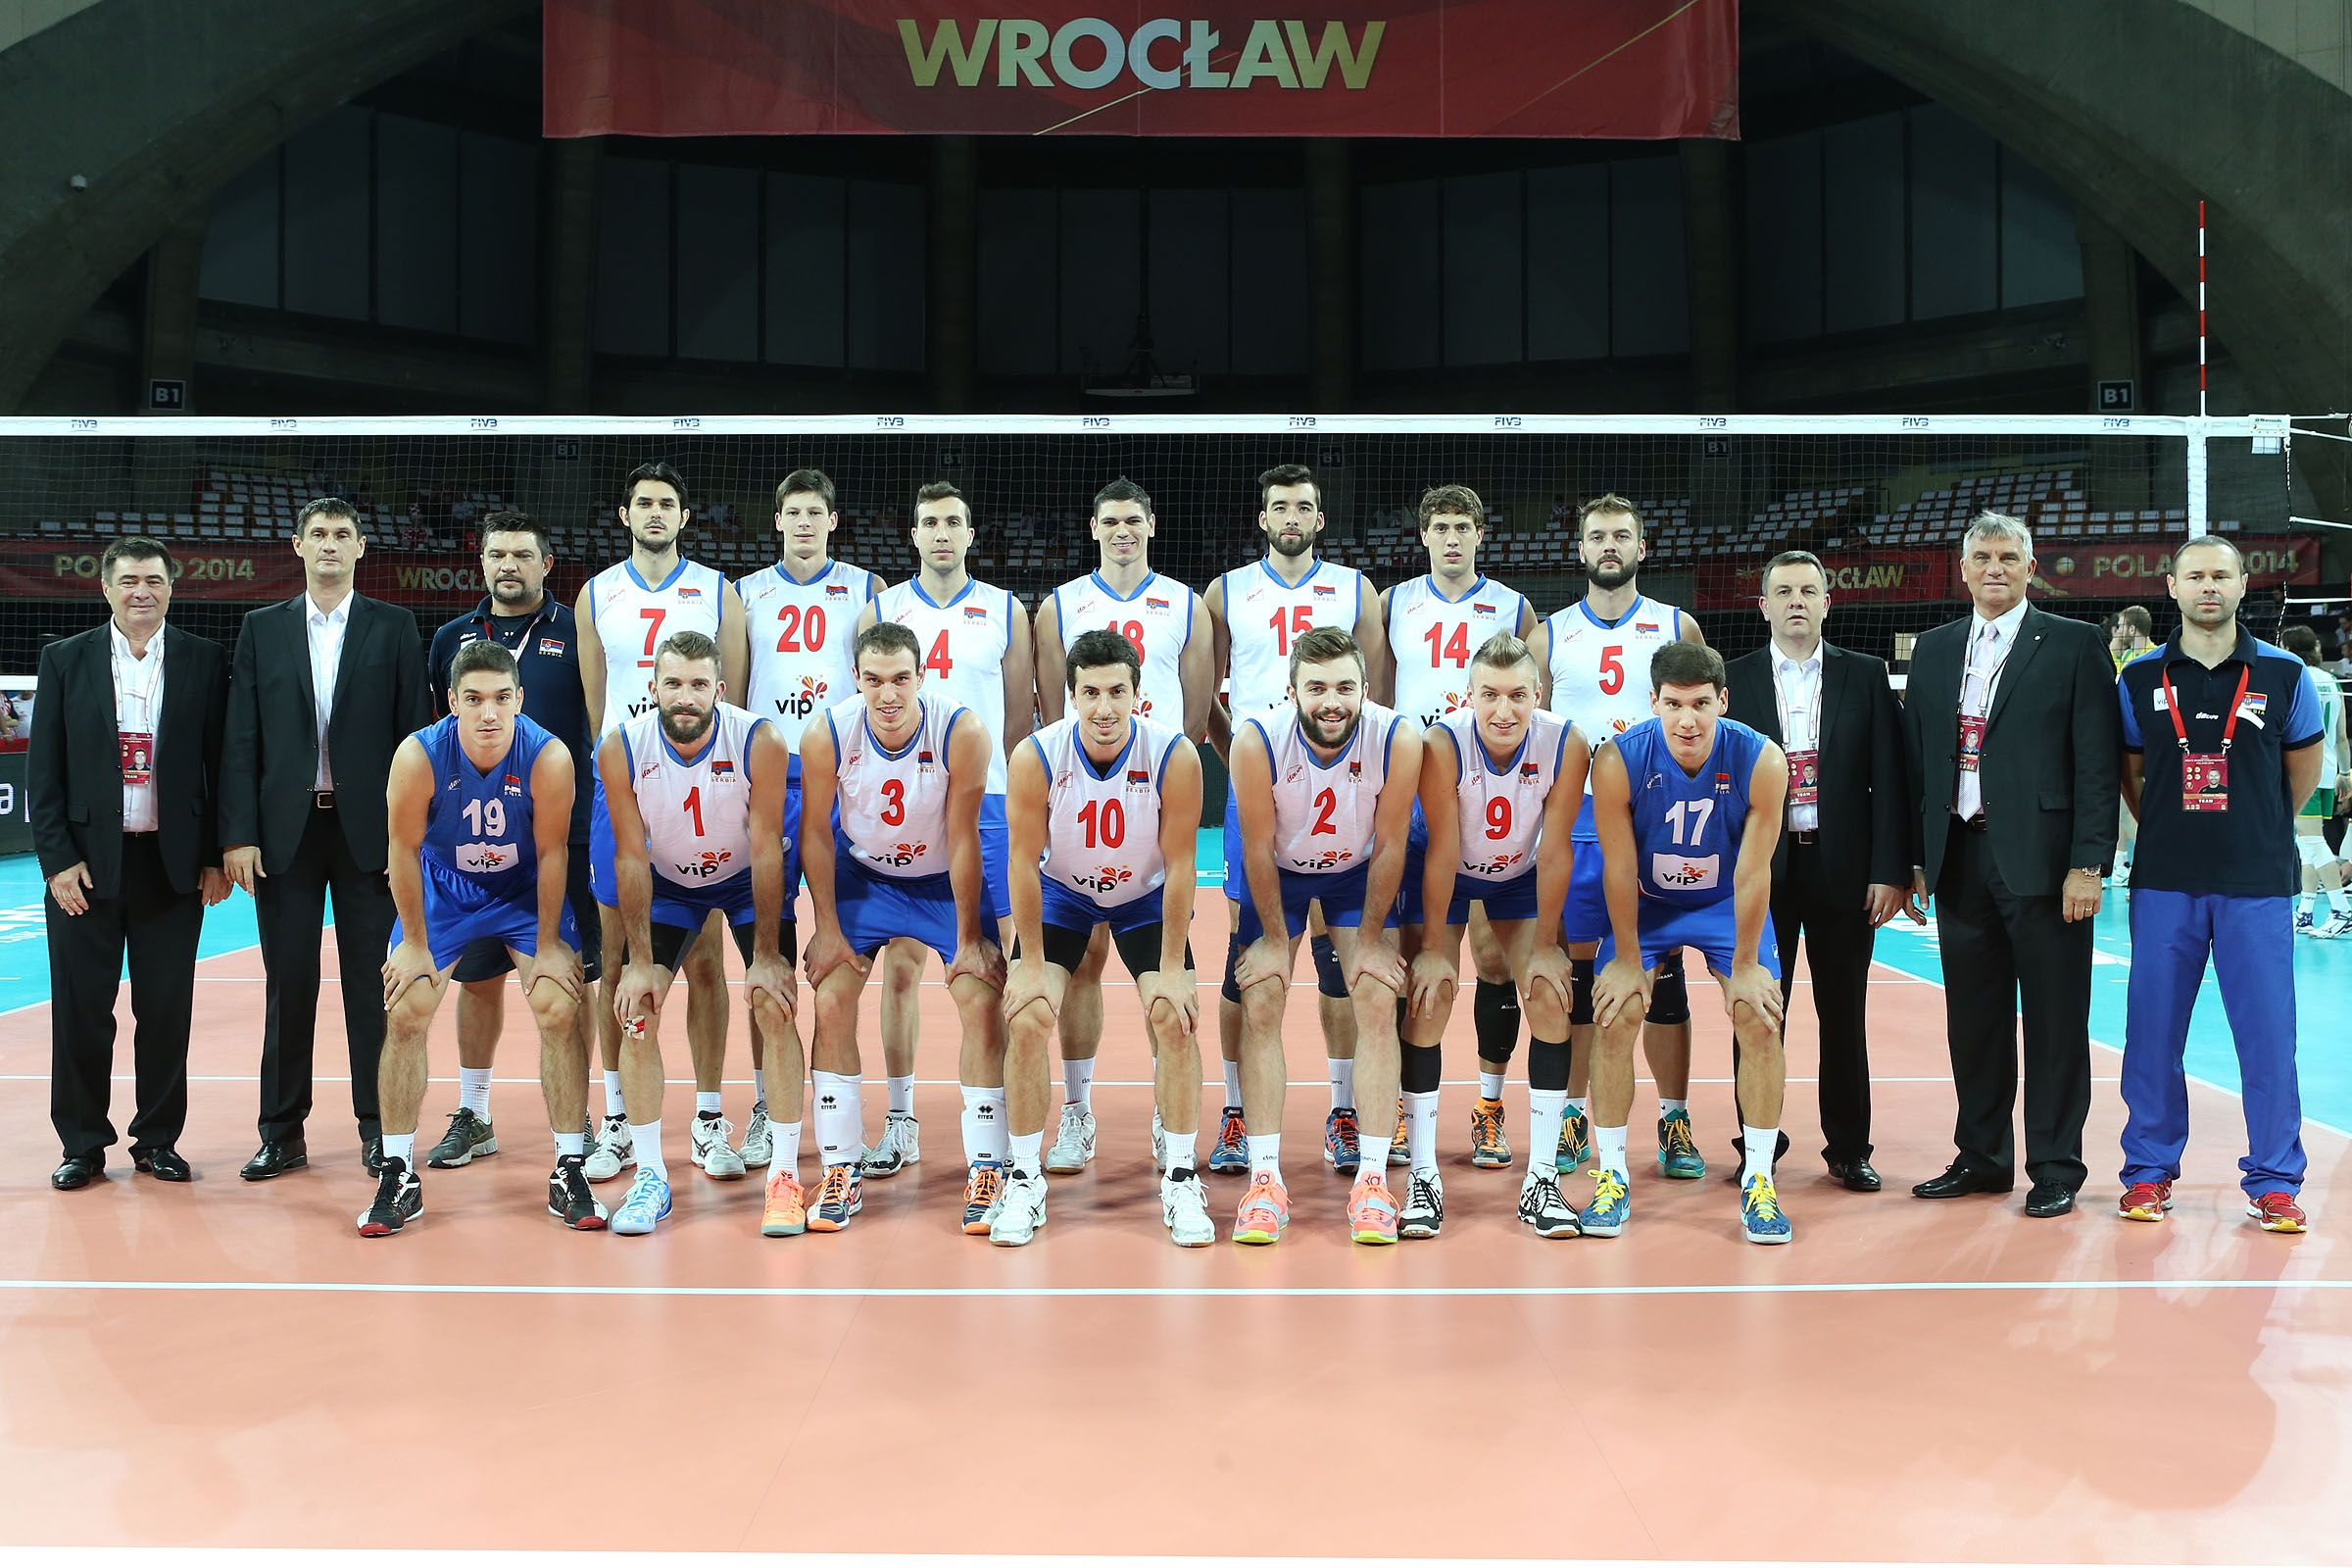 Seniori Srbije na Svetskom prvenstvu u Poljskoj. // Senior men of Serbia at the World Championship in Poland.